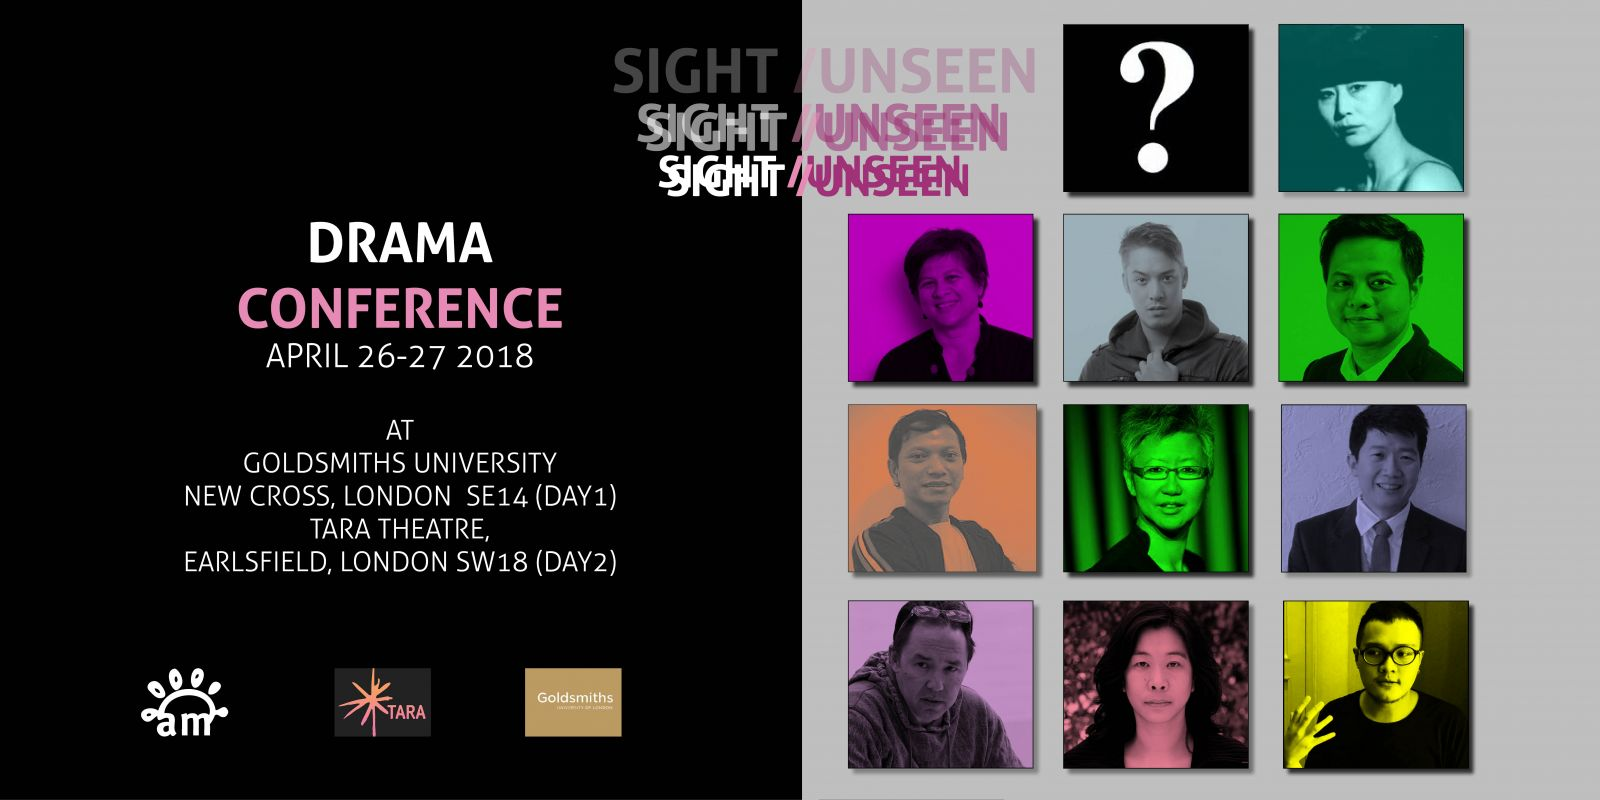 SIGHT/UNSEEN DRAMA CONFERENCE